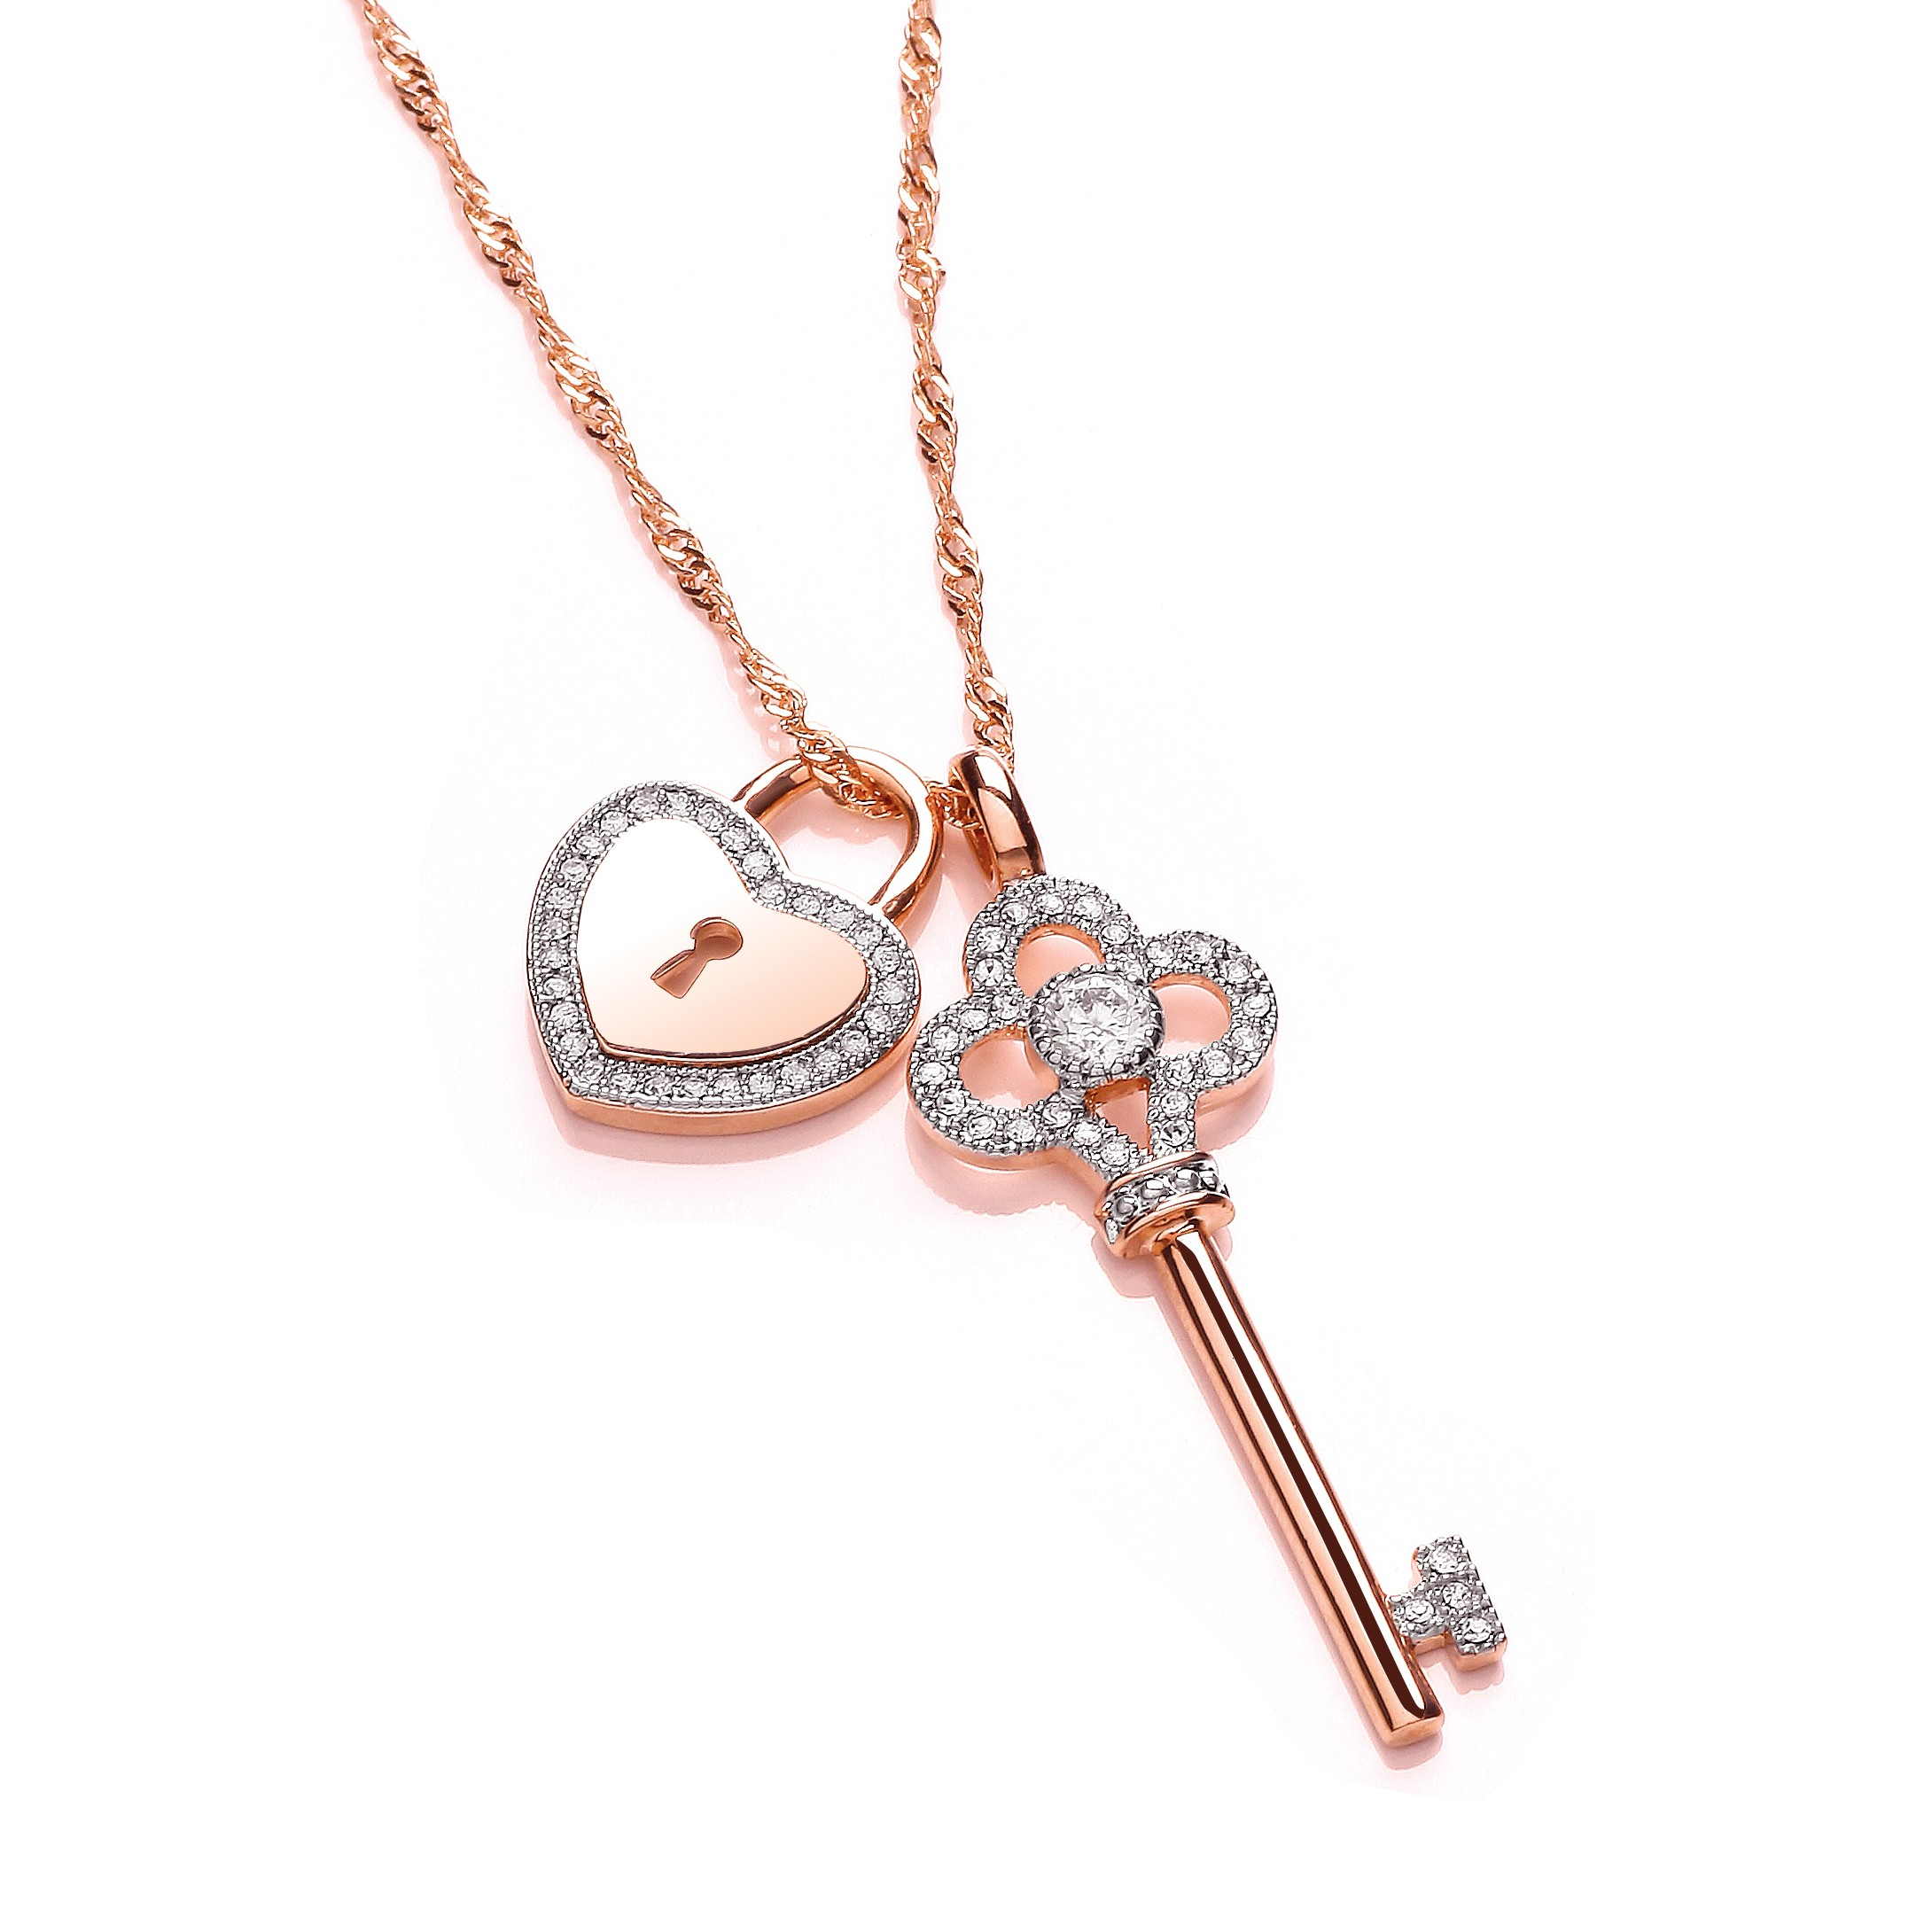 A Key And Lock Pendent For Both